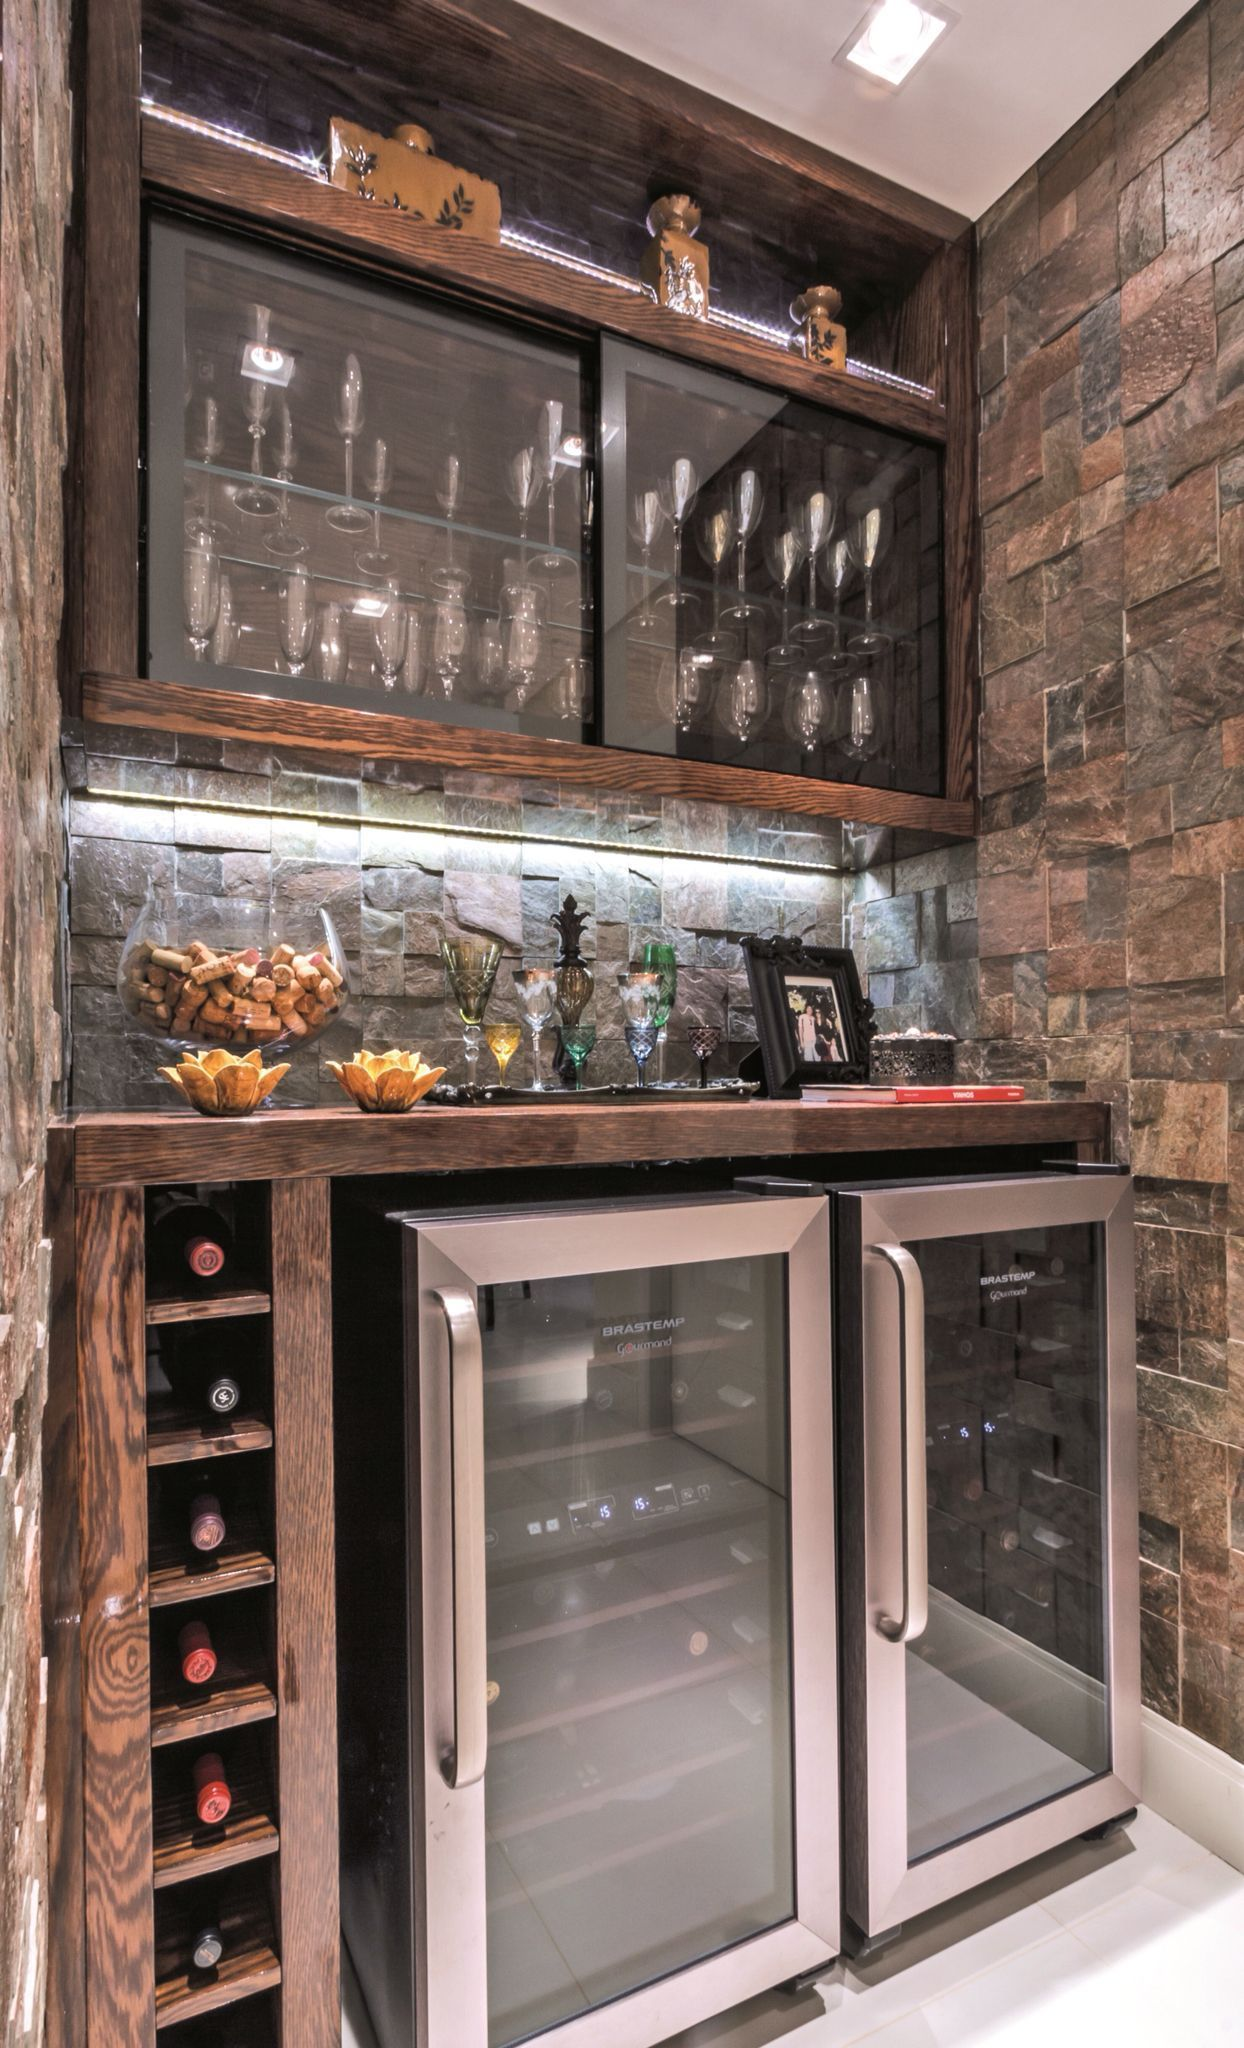 Basement Bar Ideas By Estegkk M Vel Adega Com Revestimento